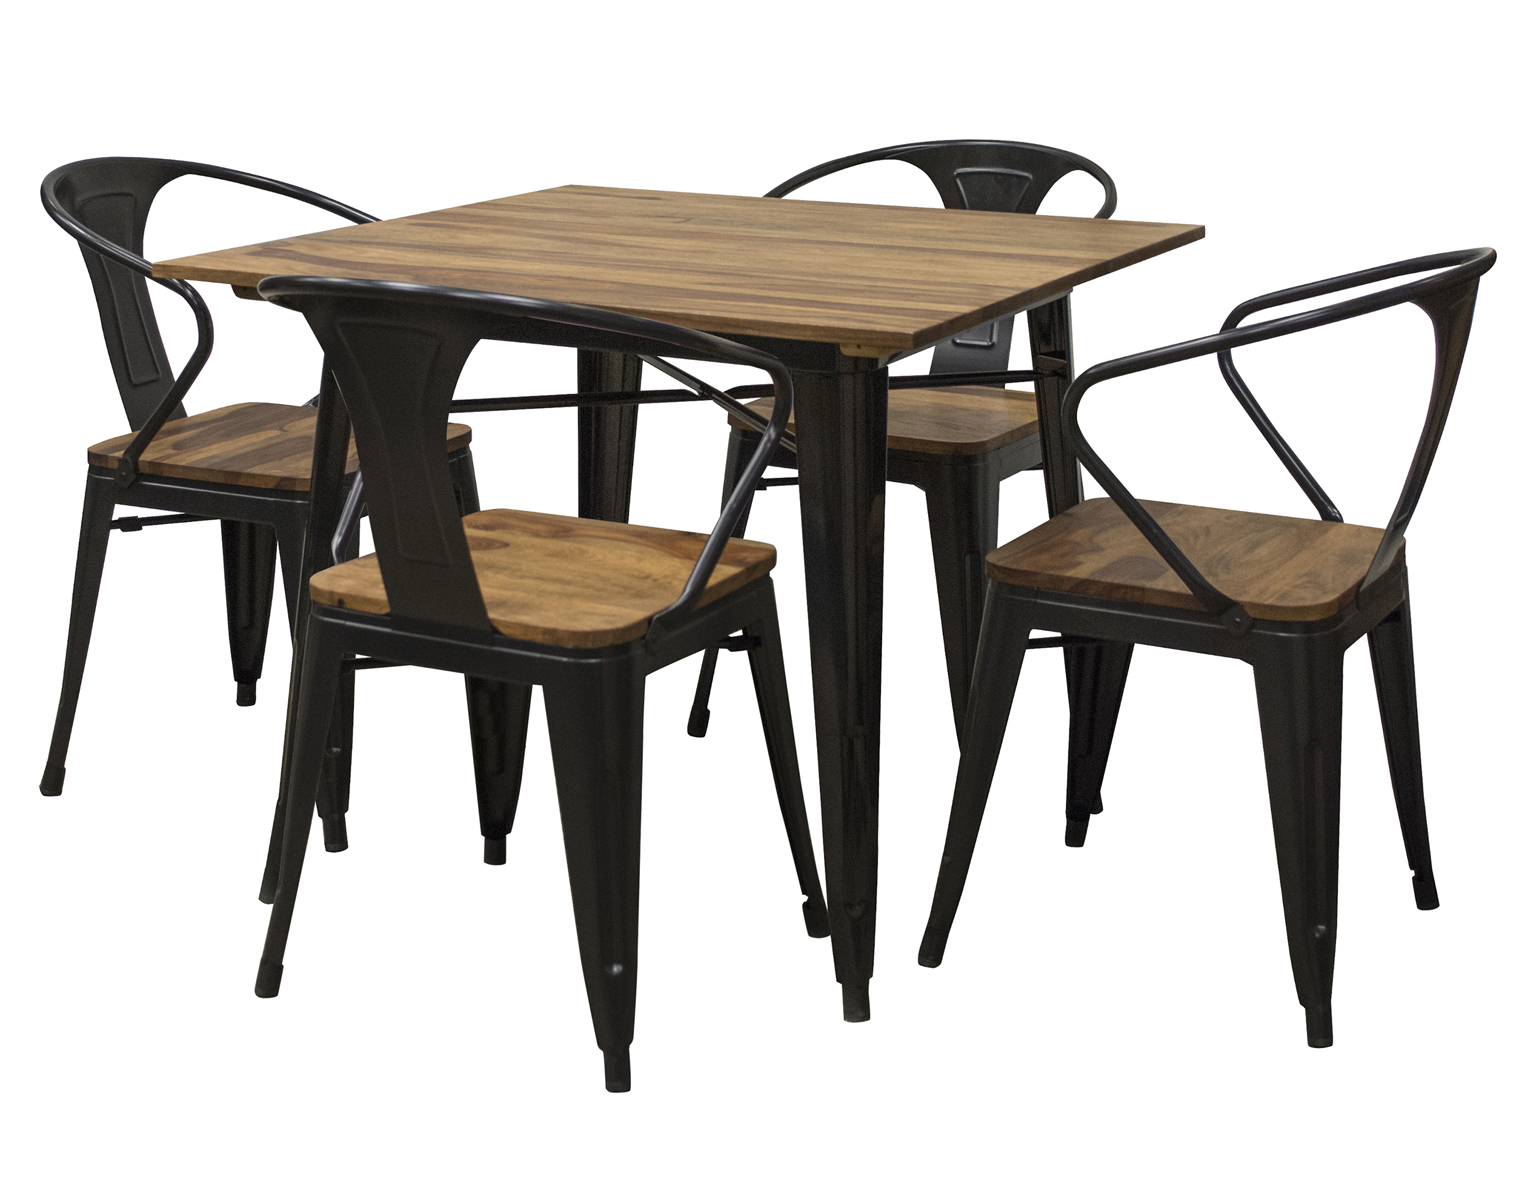 "5 Piece 36"" Dining Table Set with Rosewood Top and Metal Legs, Seats 4"